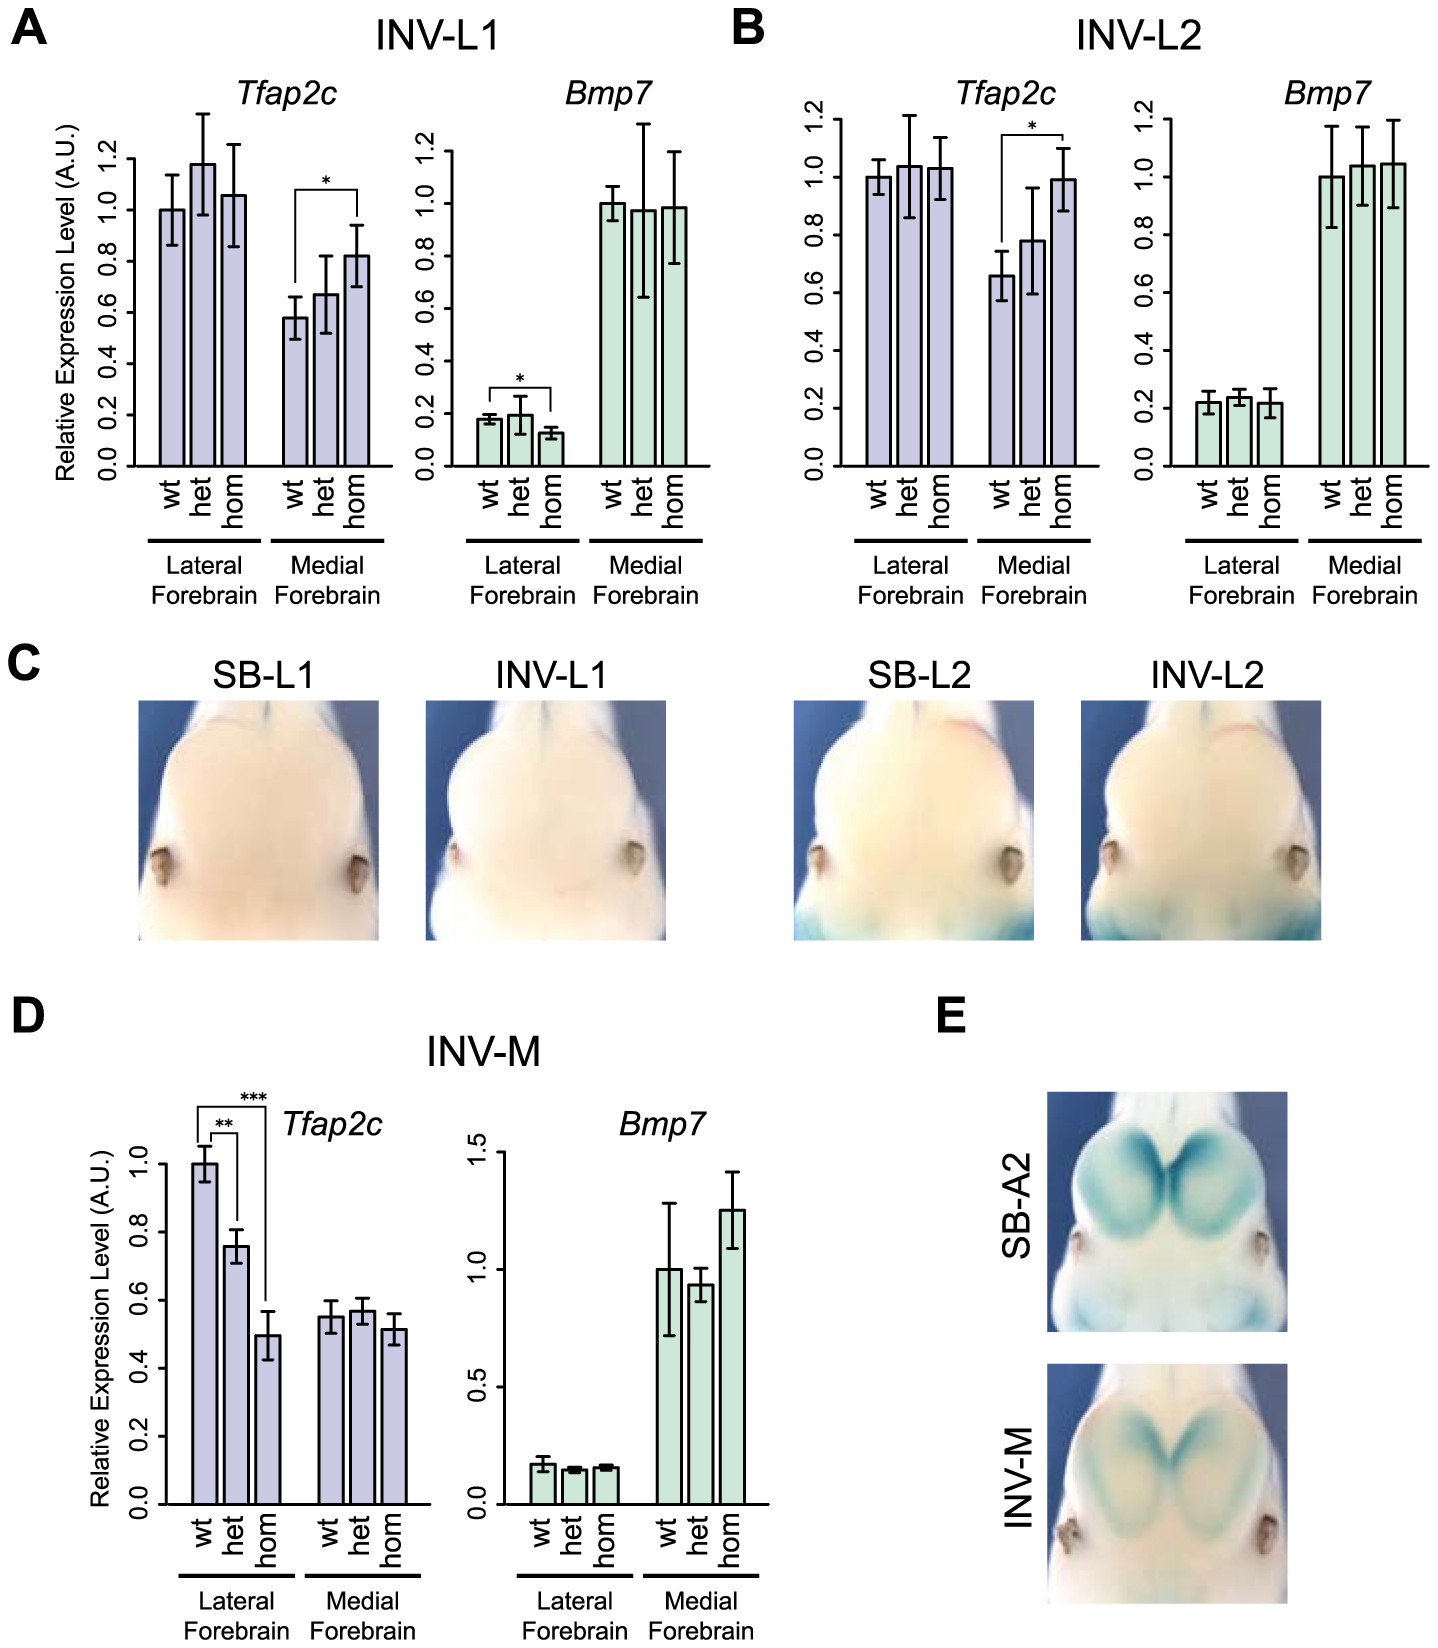 Changes of gene expression in the forebrain following genomic inversion.